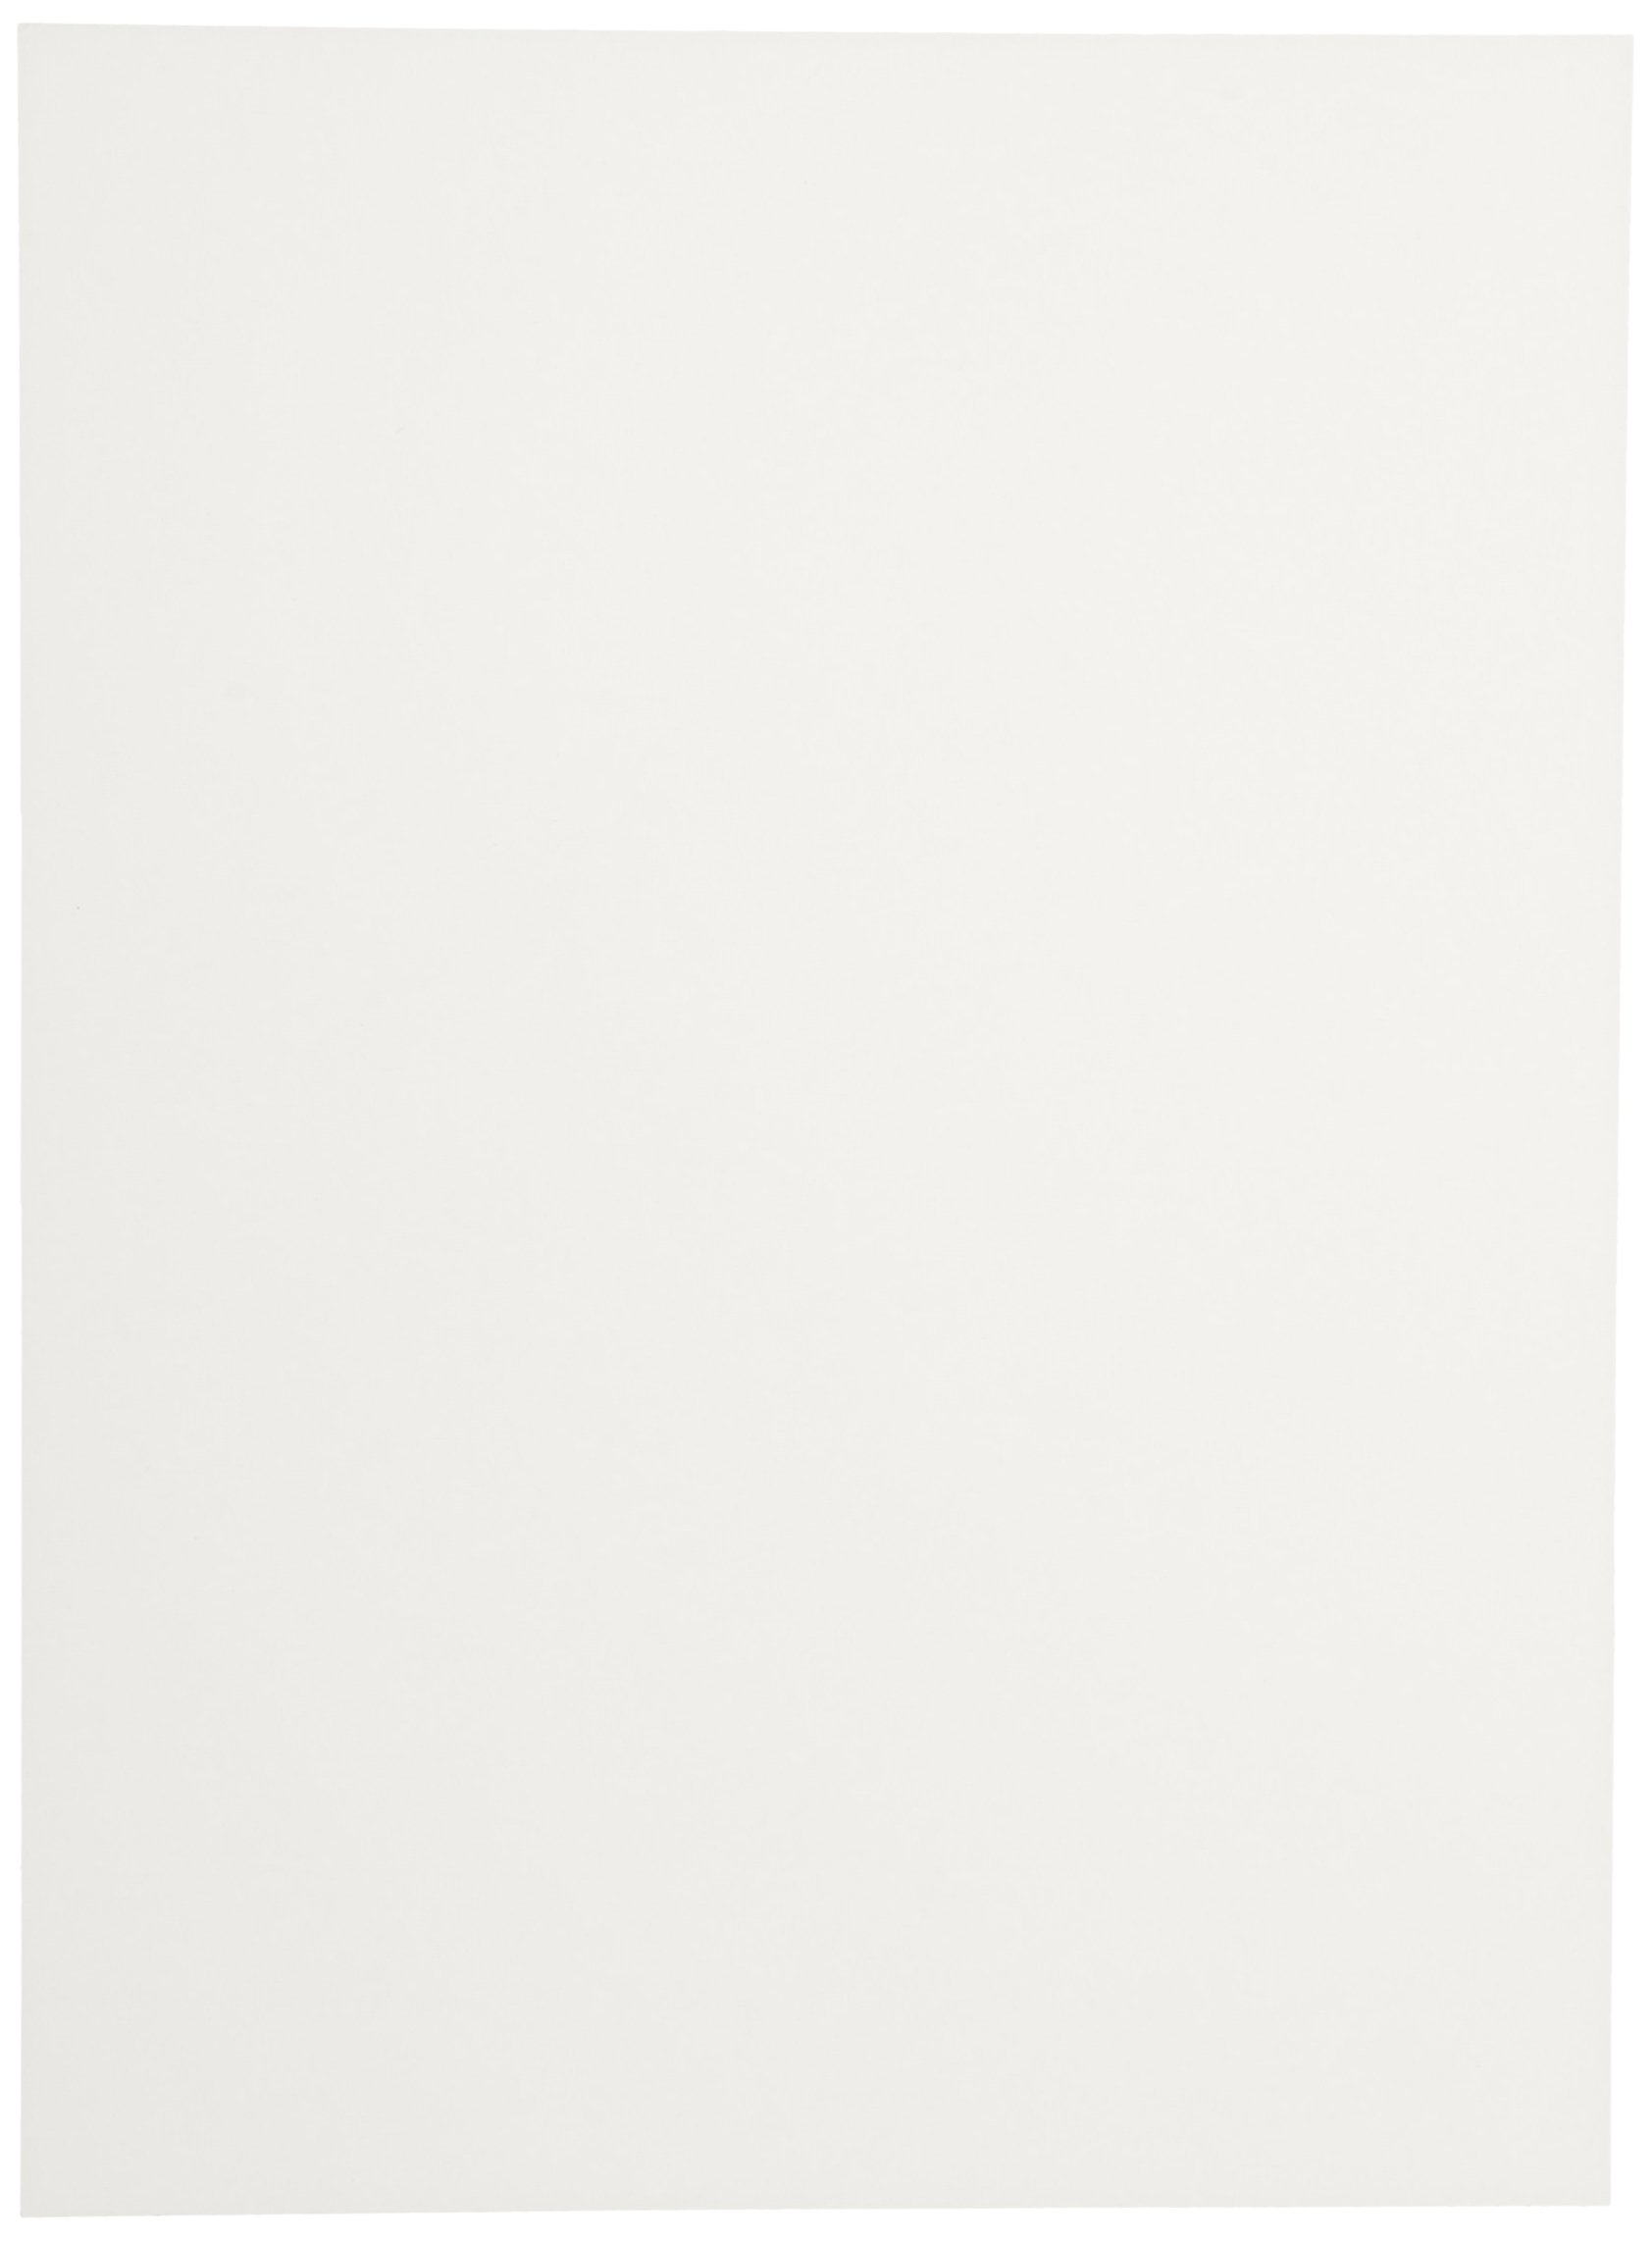 Sax Halifax Cold Press Watercolor Paper, 11 X 15 Inches, 90 lb, White, 100 Sheets by Sax